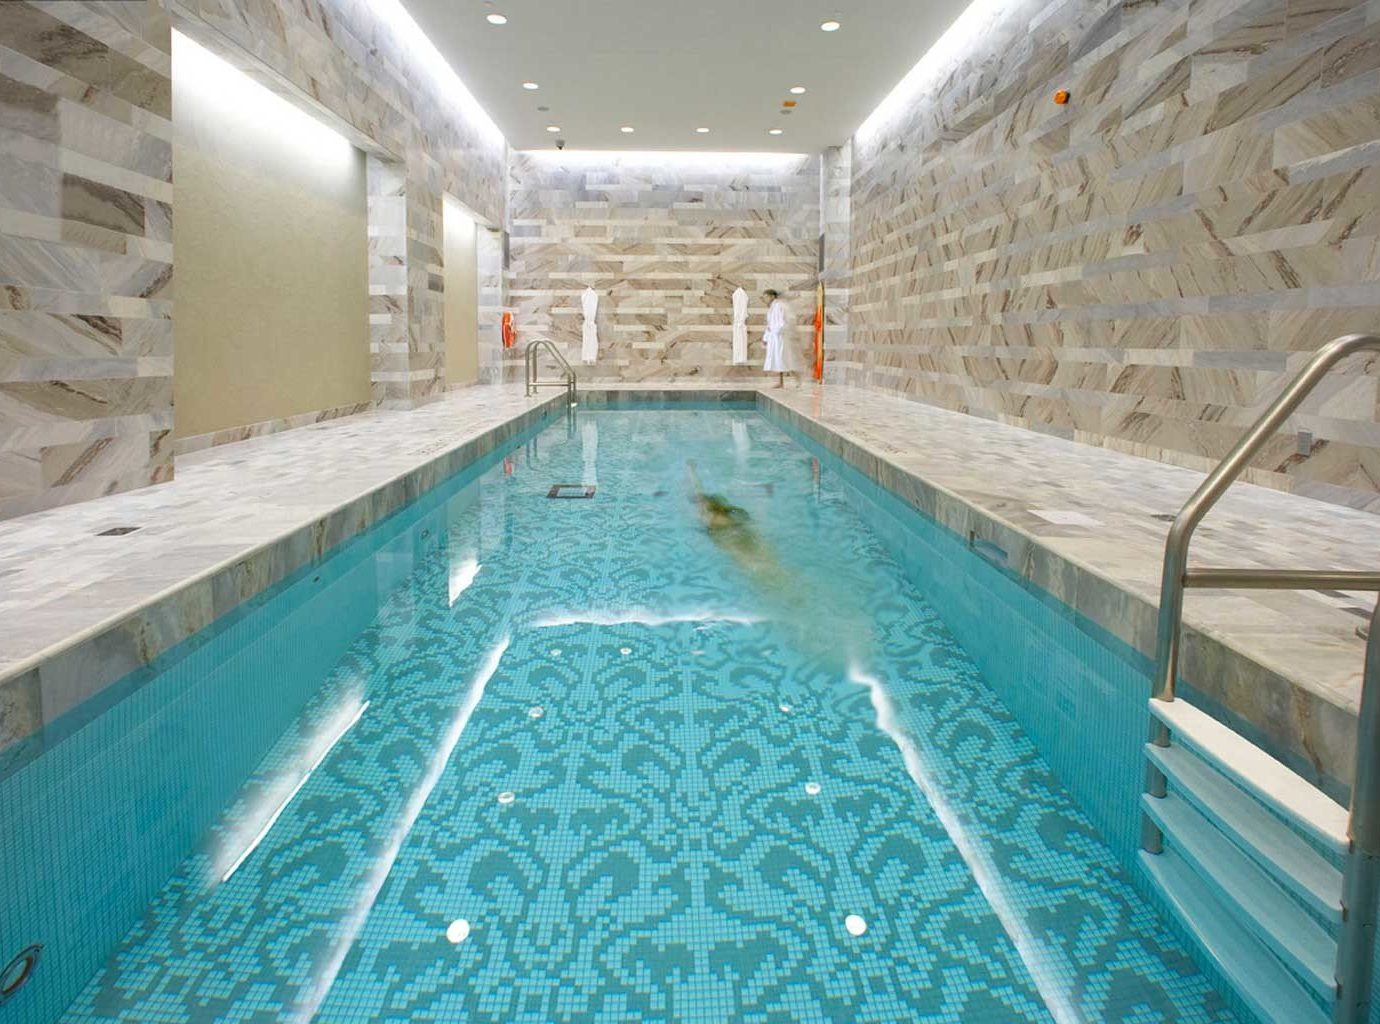 Canada Hotels Luxury Modern Pool Toronto indoor swimming pool property leisure centre thermae estate jacuzzi